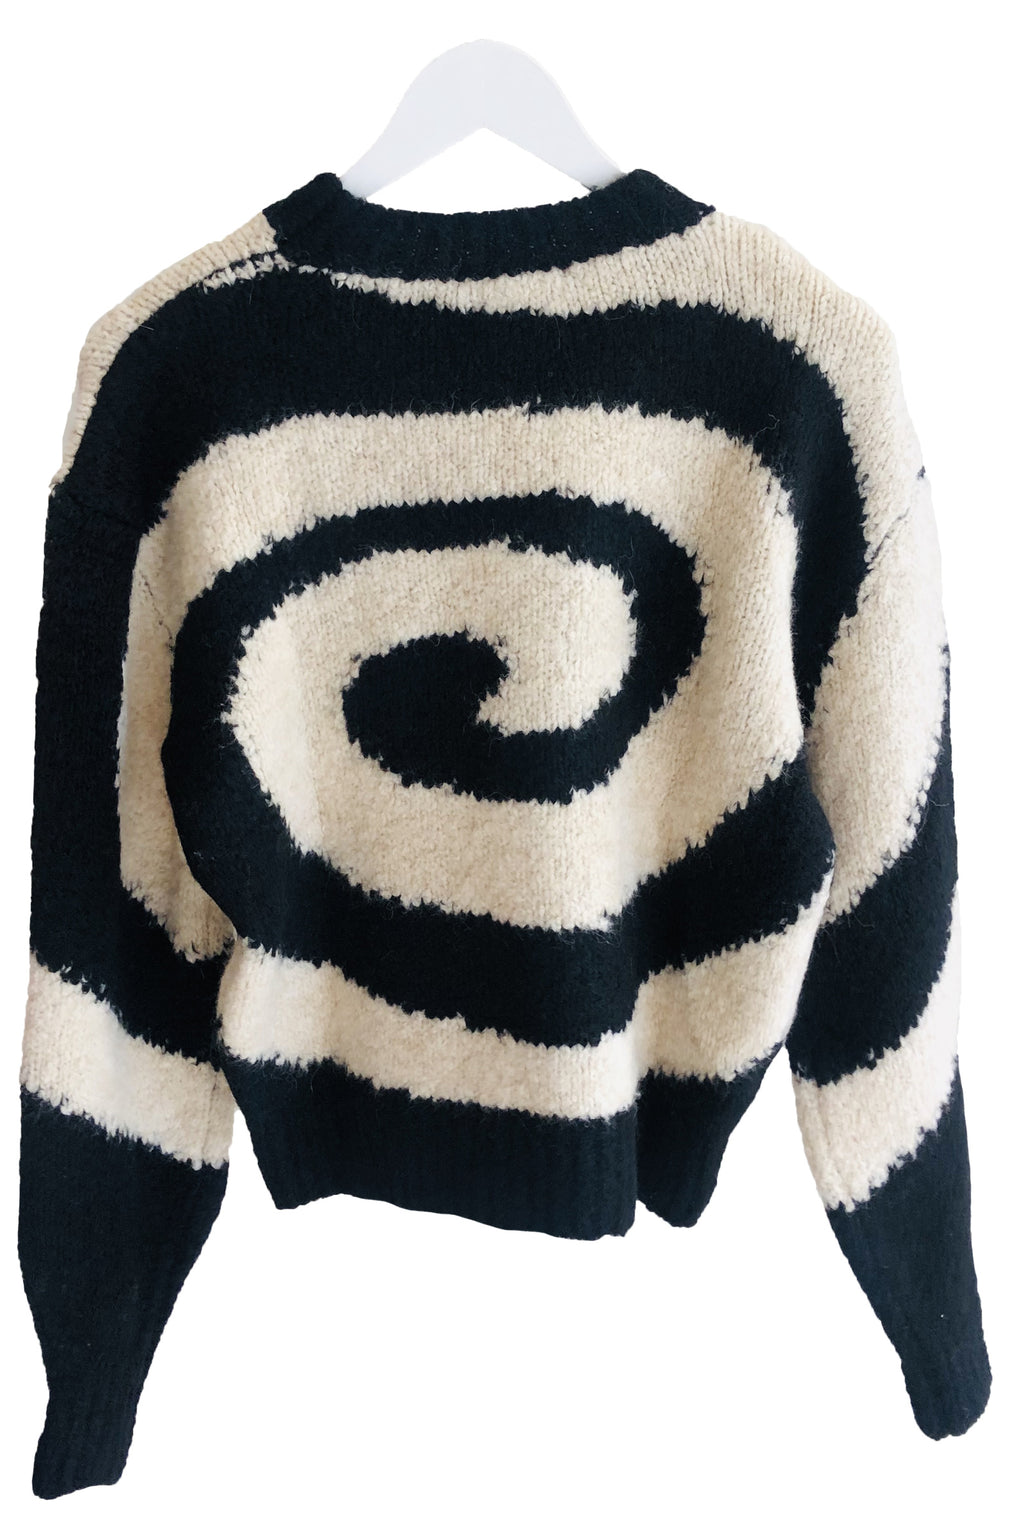 Paloma Wool Twister Fitted Sweater With Swirl in BLack And White